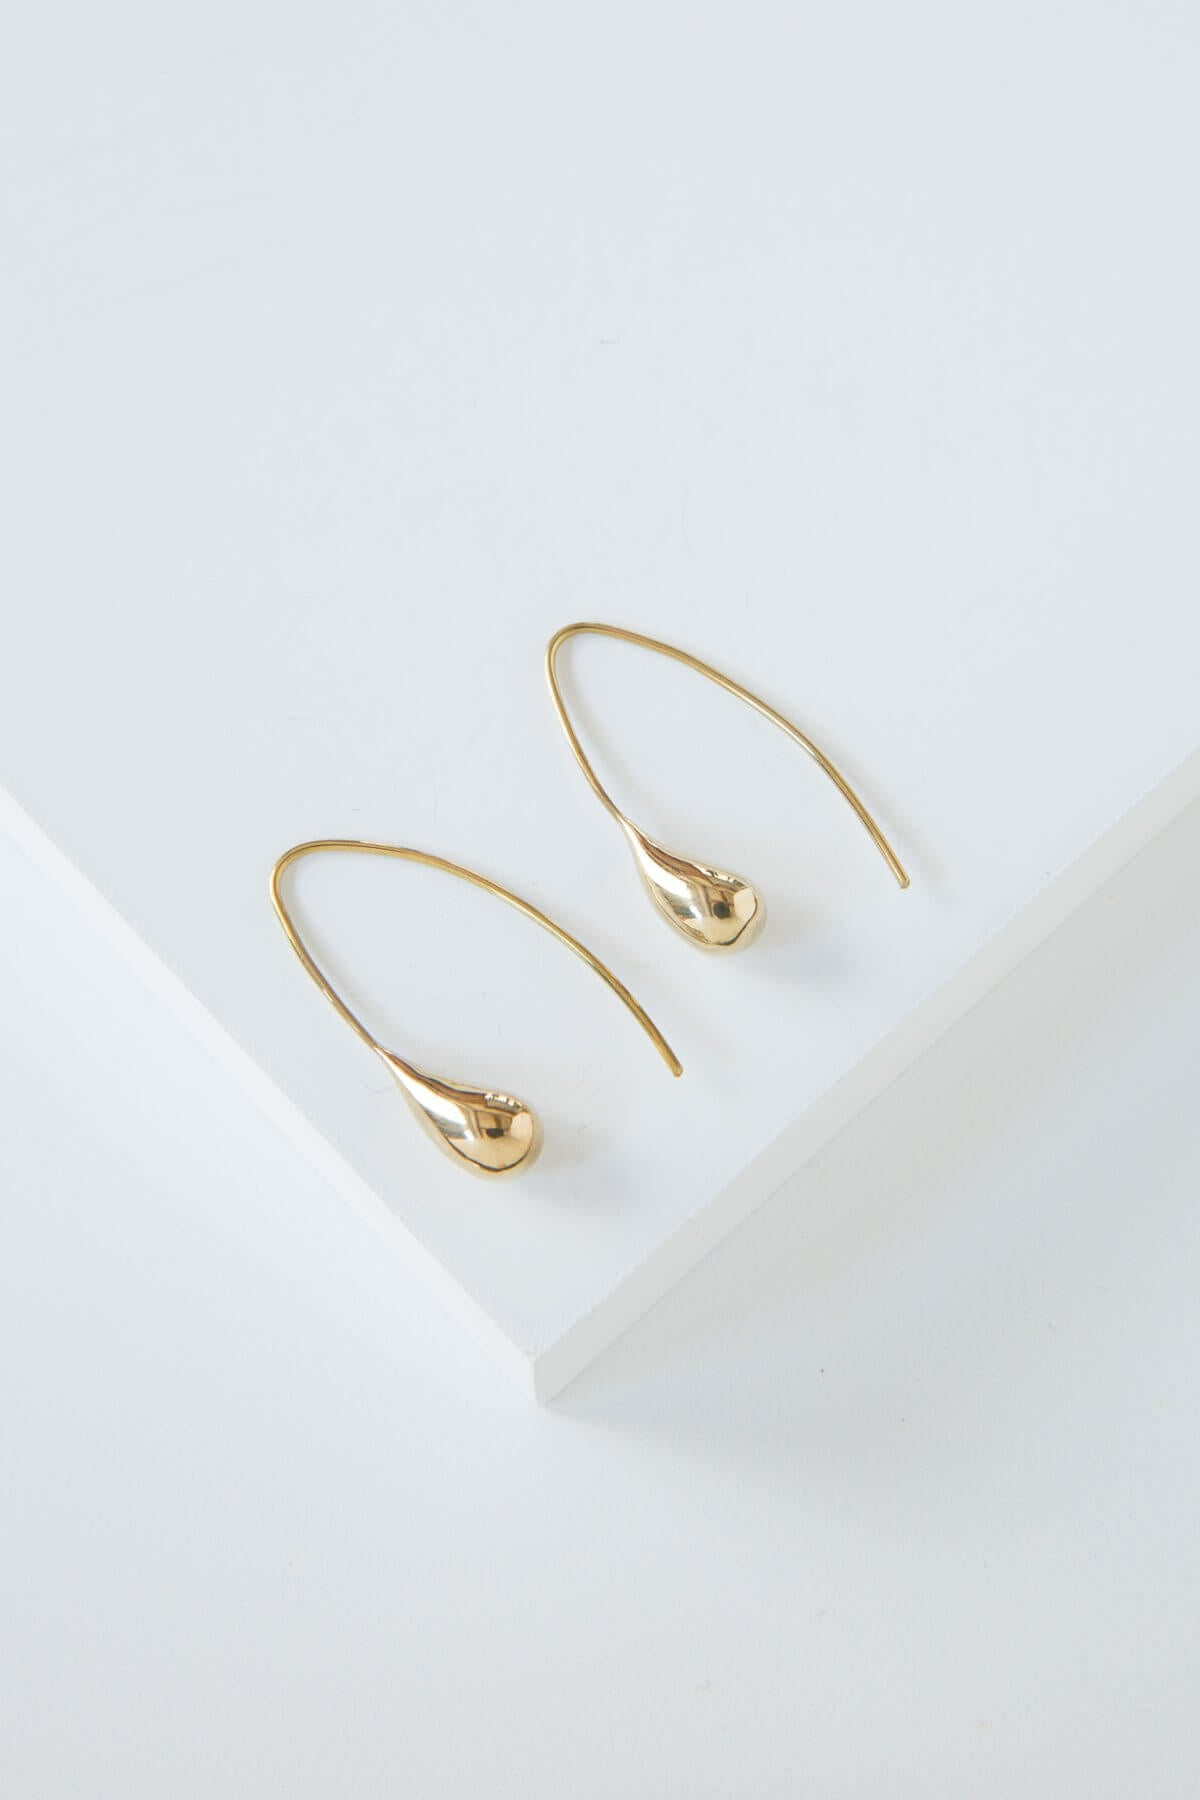 Soko Dash Threader Earrings